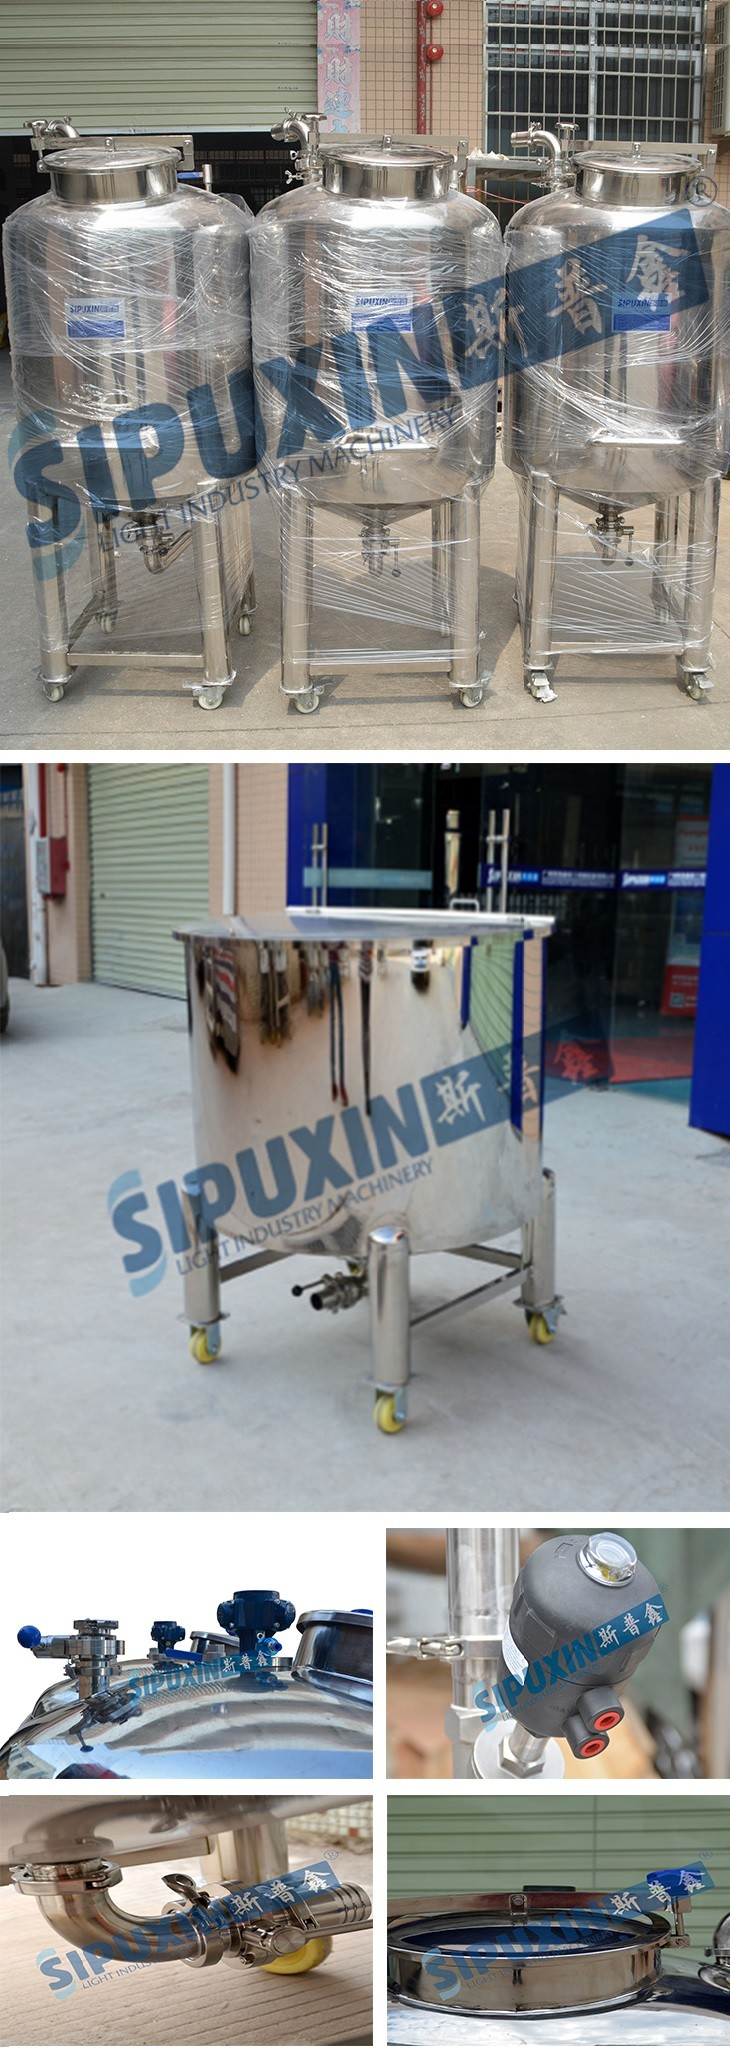 Sipuxin High Quality Stainless Steel Tanks pressure vessel food grade high pressure fermentation vessel sealing tanks